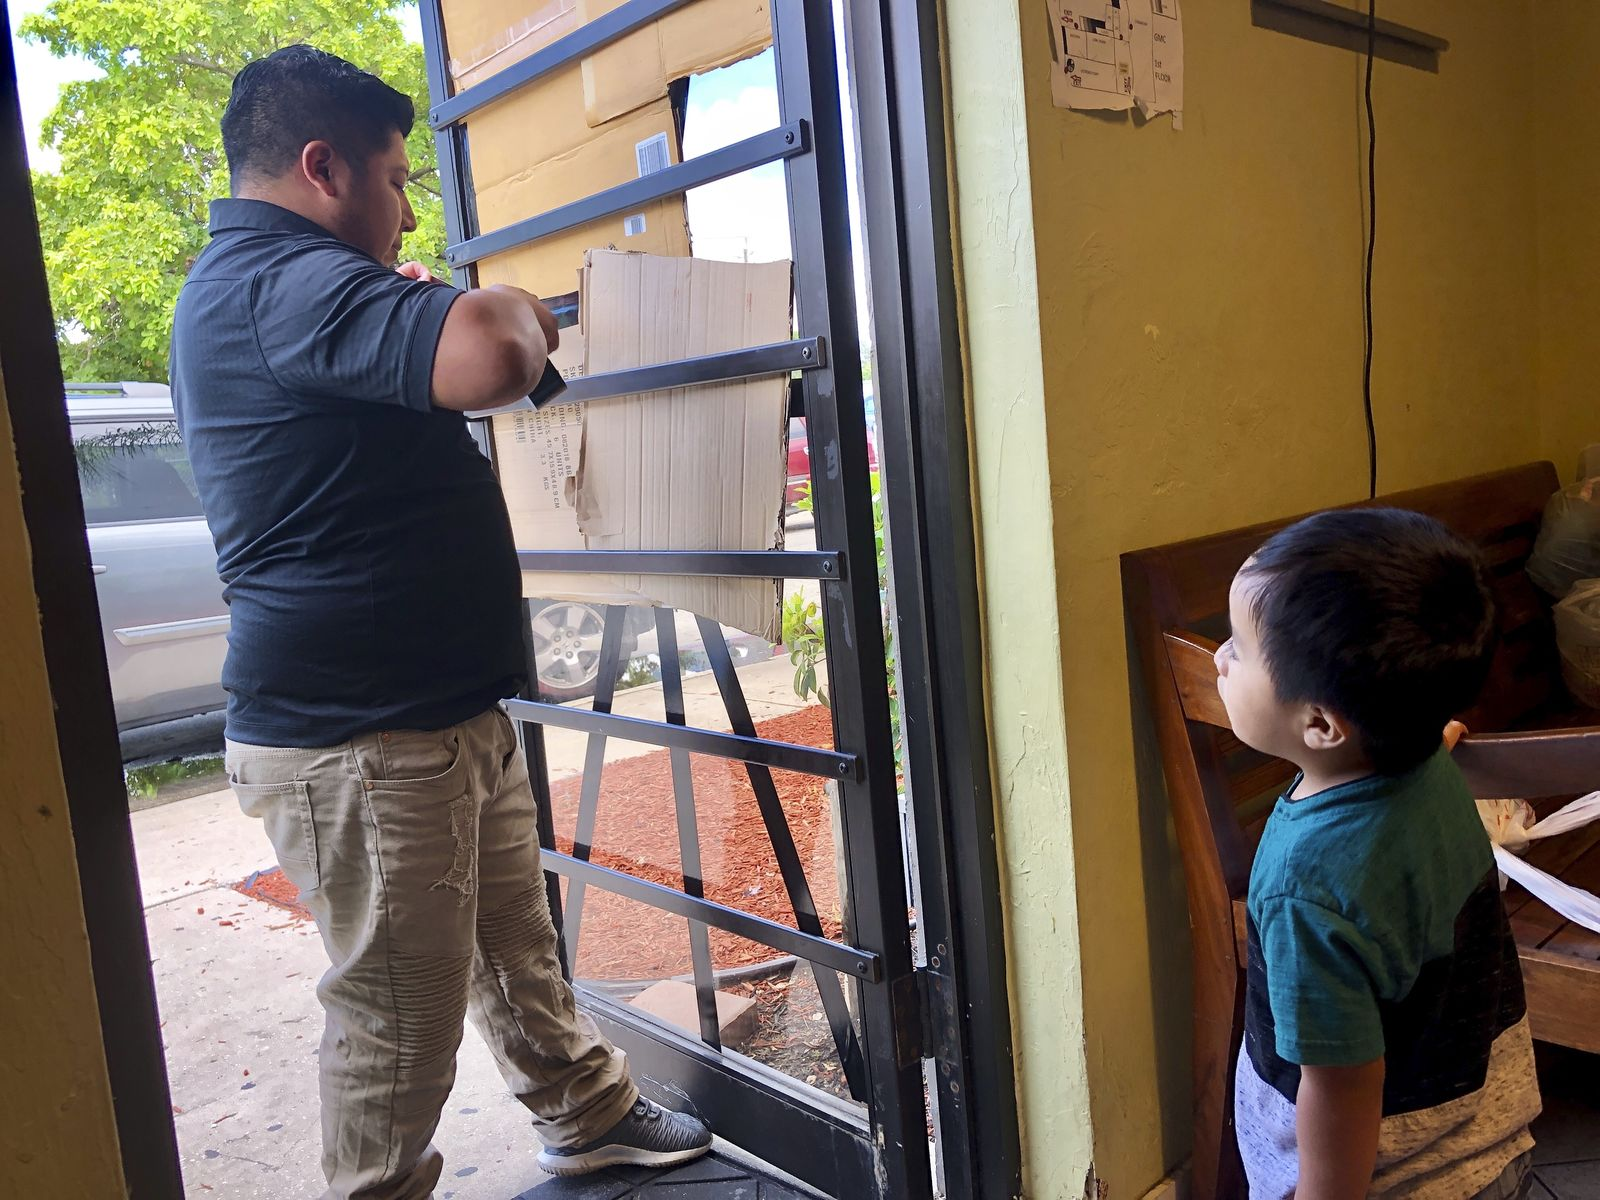 A volunteer of the center is tapes pieces of cardboard to the glass doors as women waited in line for help at the Guatemalan-Maya Center for immigrants on on Friday, Aug. 30, 2019 in  Lake Worth, Fla. (AP PhotoAdriana Gomez)